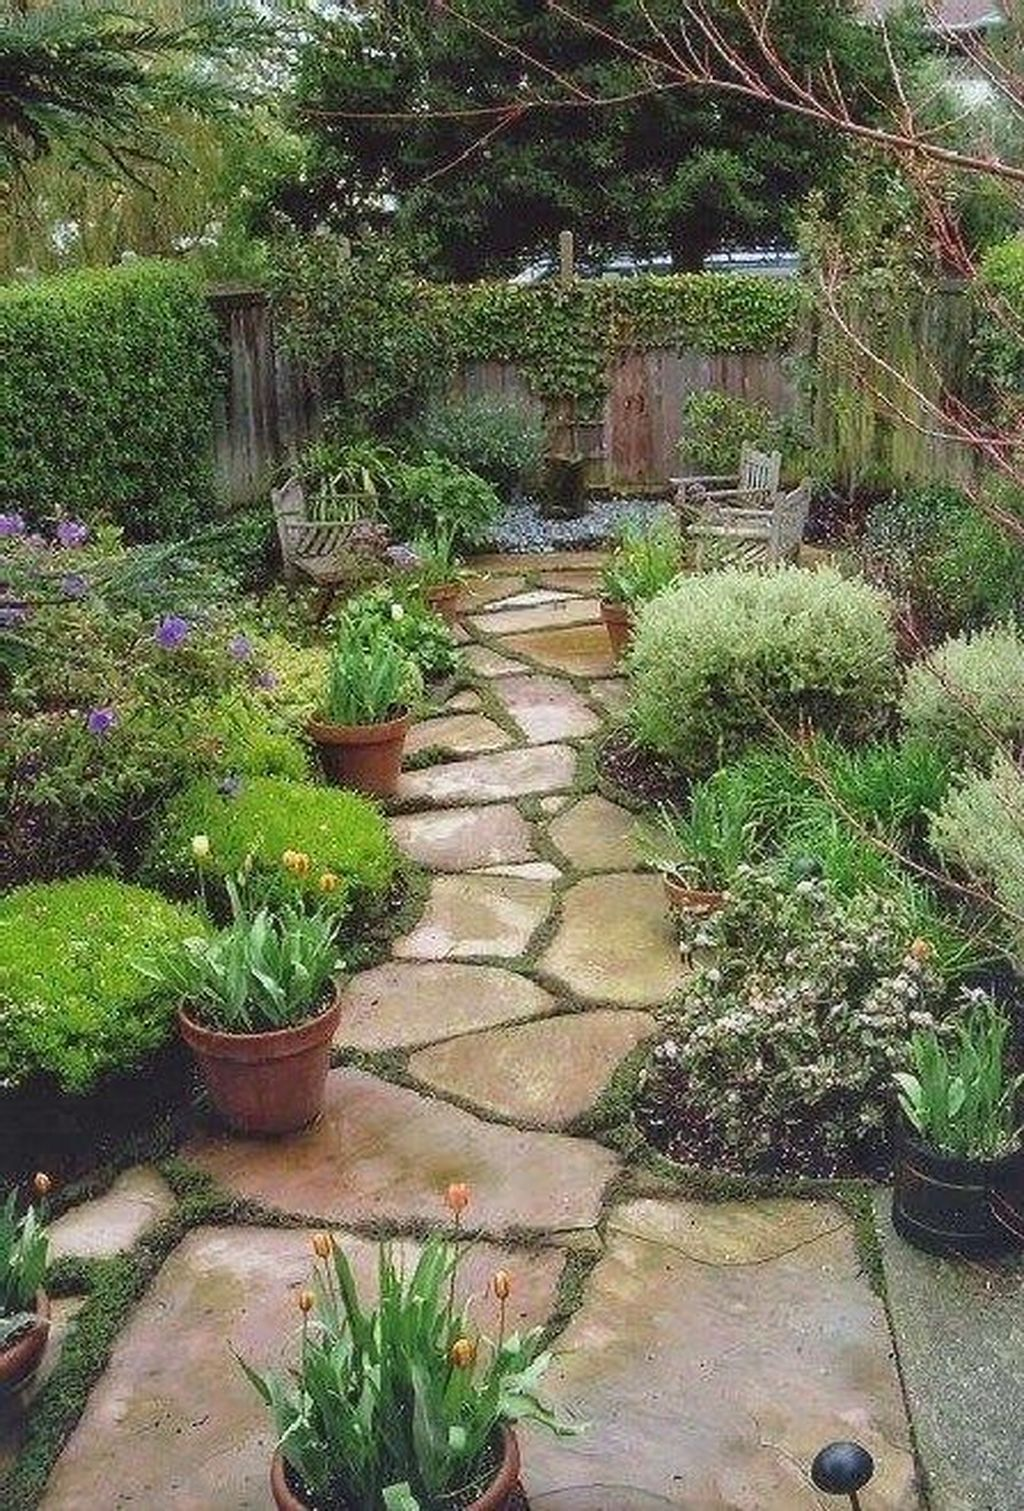 38 Awesome Flagstone Patio Design Ideas Awesome Design Flagstone Ideas Patio In 2020 Stone Garden Paths Walkway Landscaping Patio Garden